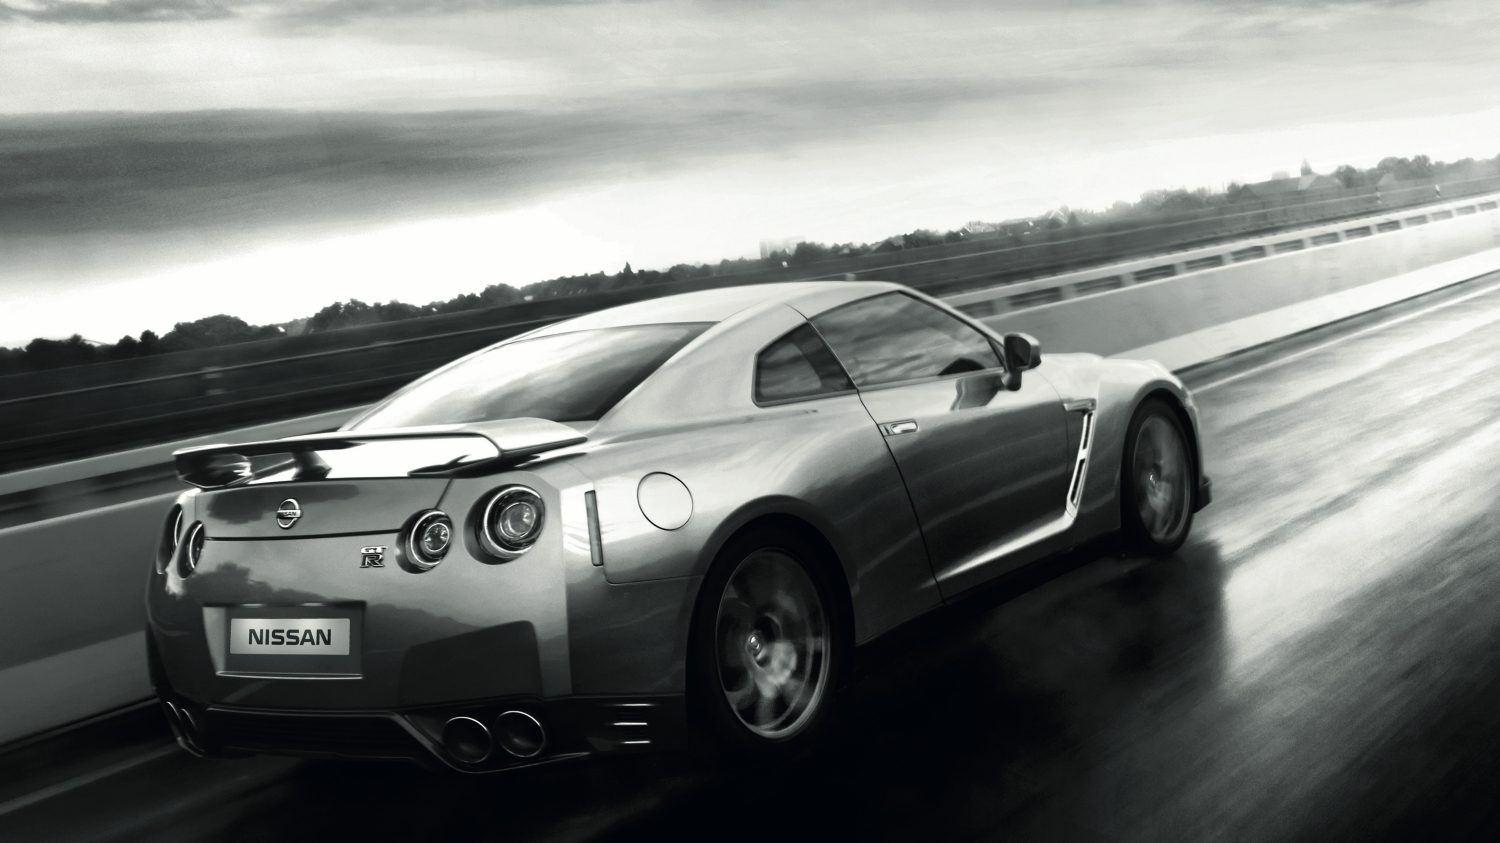 Nissan GT-R - car on sleek road